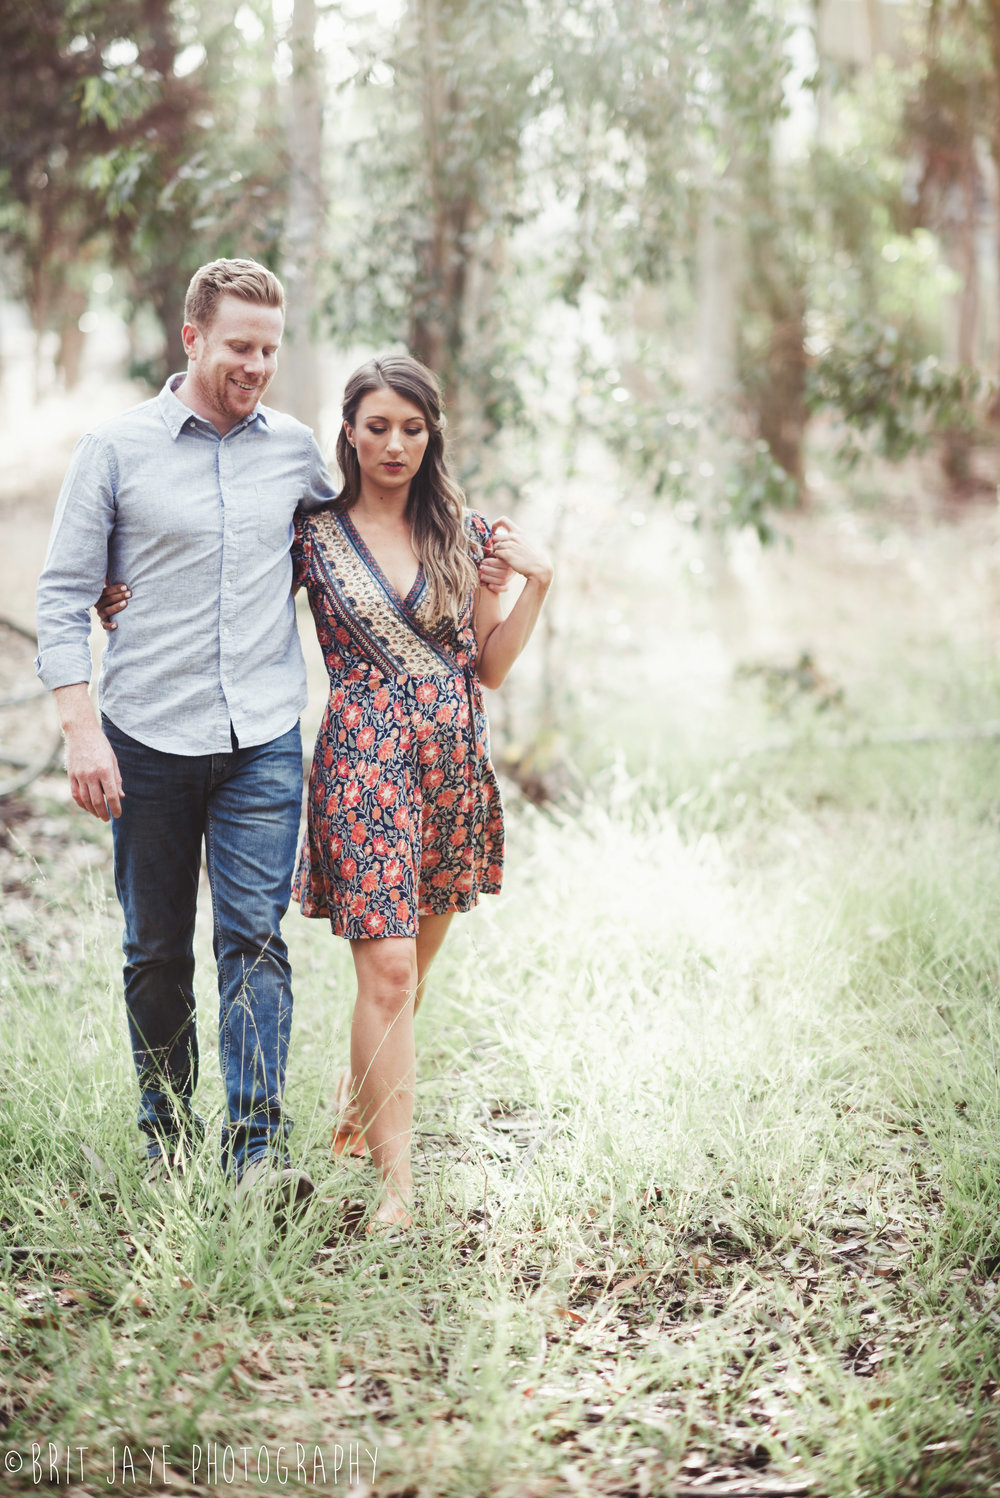 Picnic_In_The_Woods_Engagement_Session_with_Bike_San_Diego-9.jpg